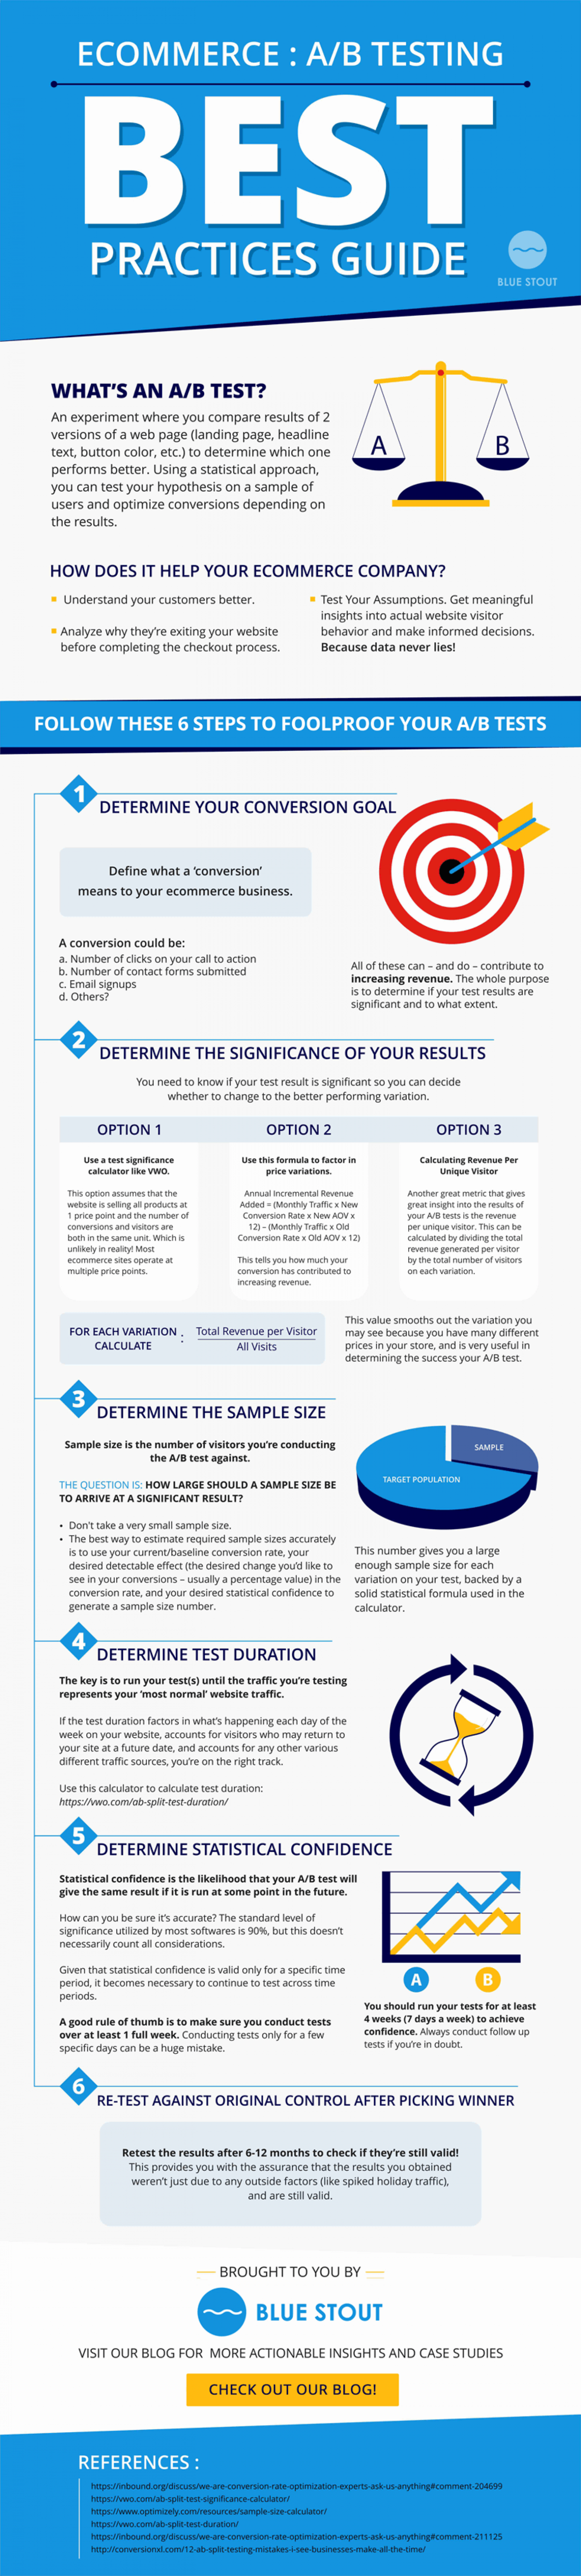 How to A/B Test Your Ecommerce Website Infographic